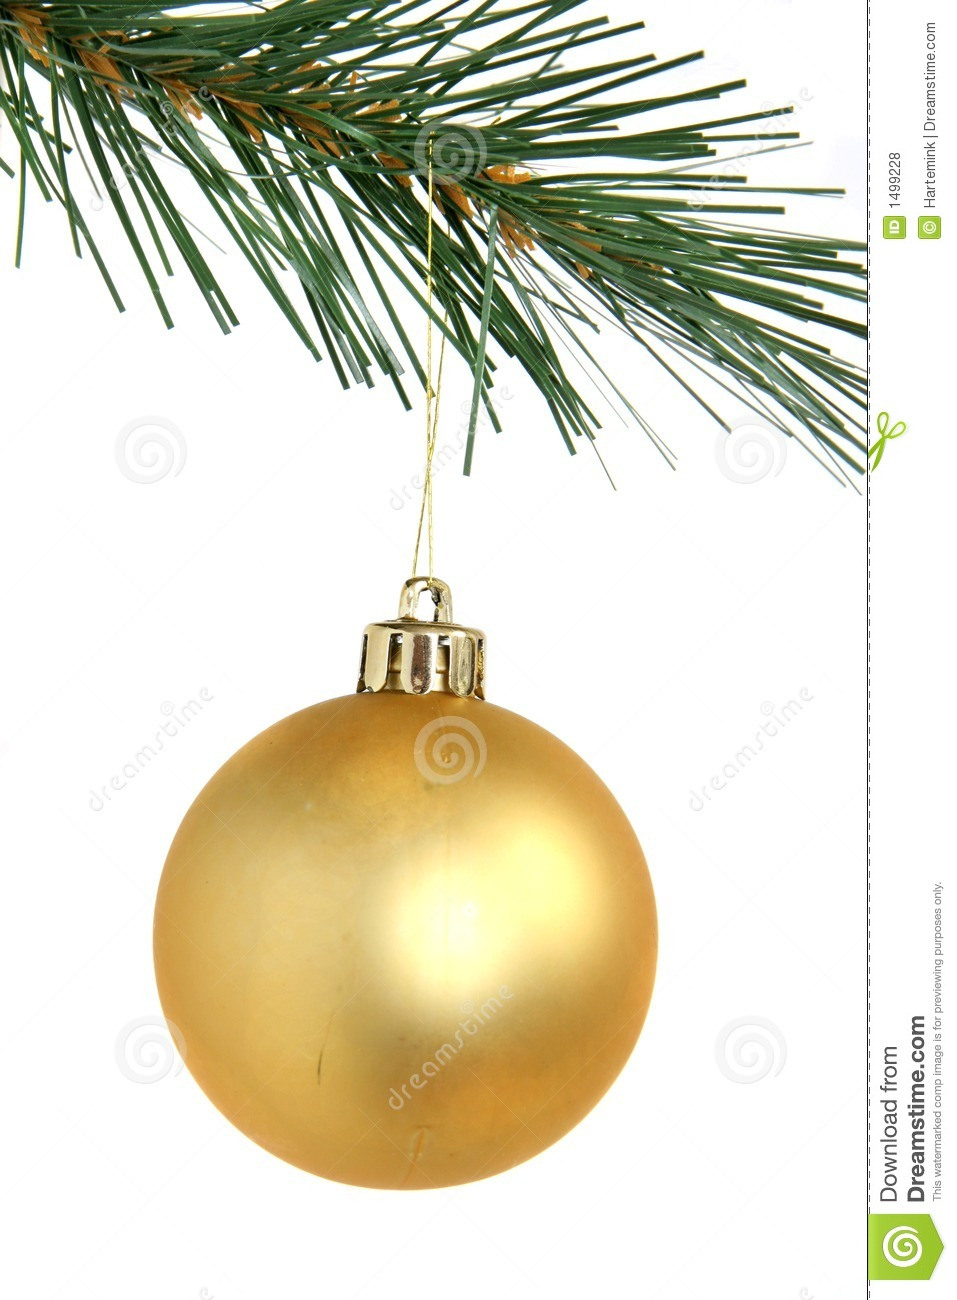 Christmas Tree Balls.Golden Christmas Ball Hanging From Christmas Tree Stock